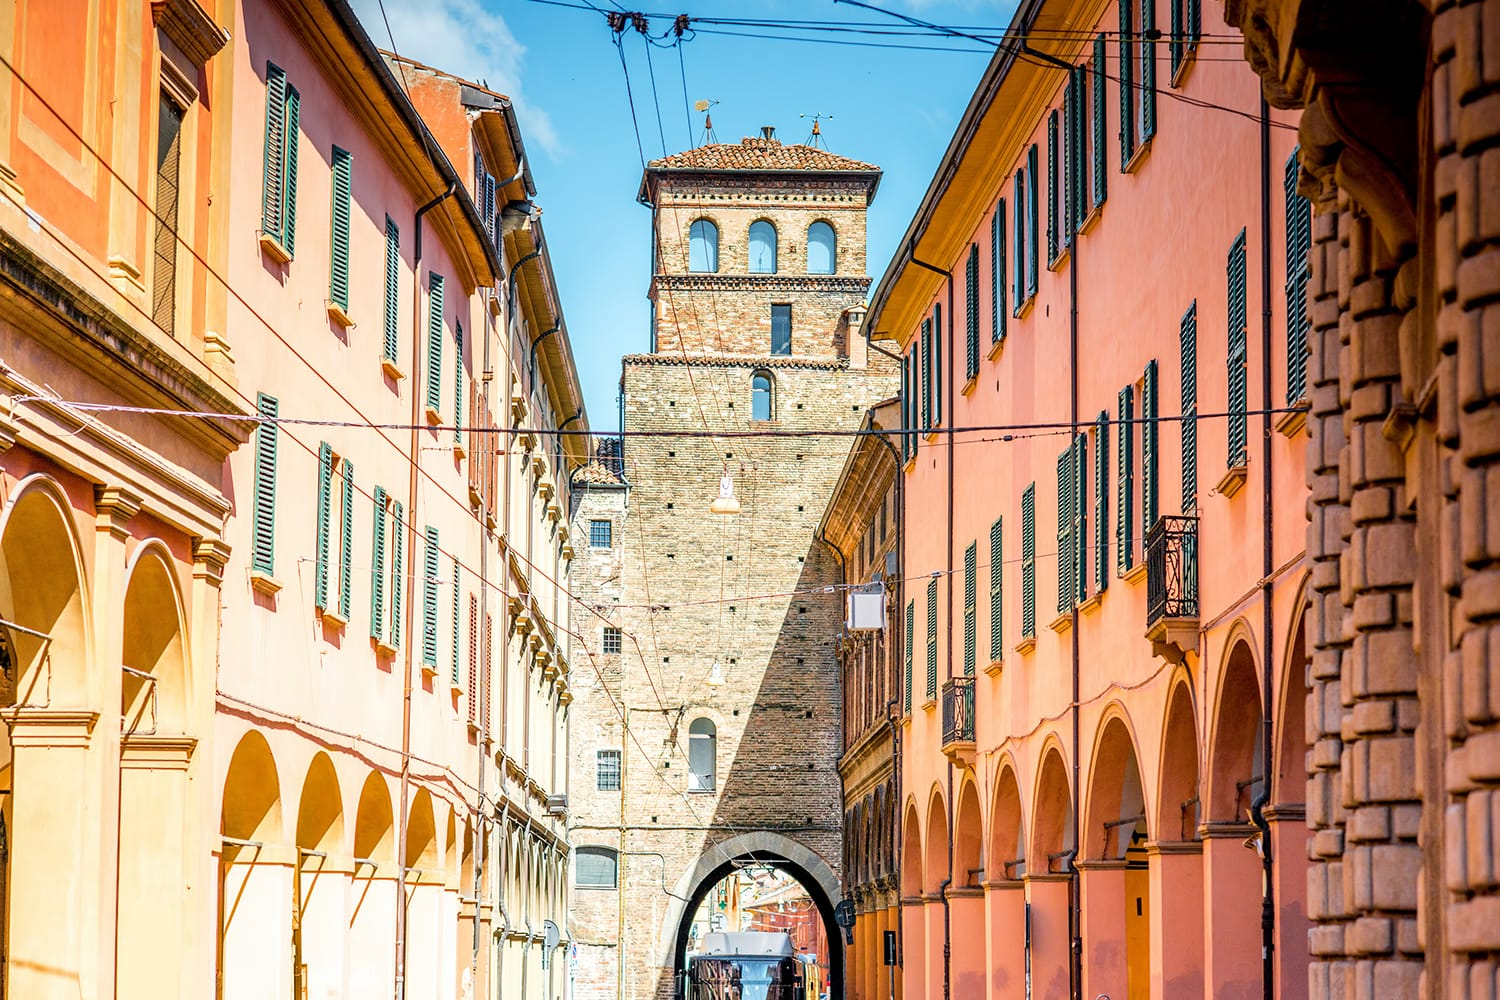 Street view with city gate and galleries in Bologna in Italy